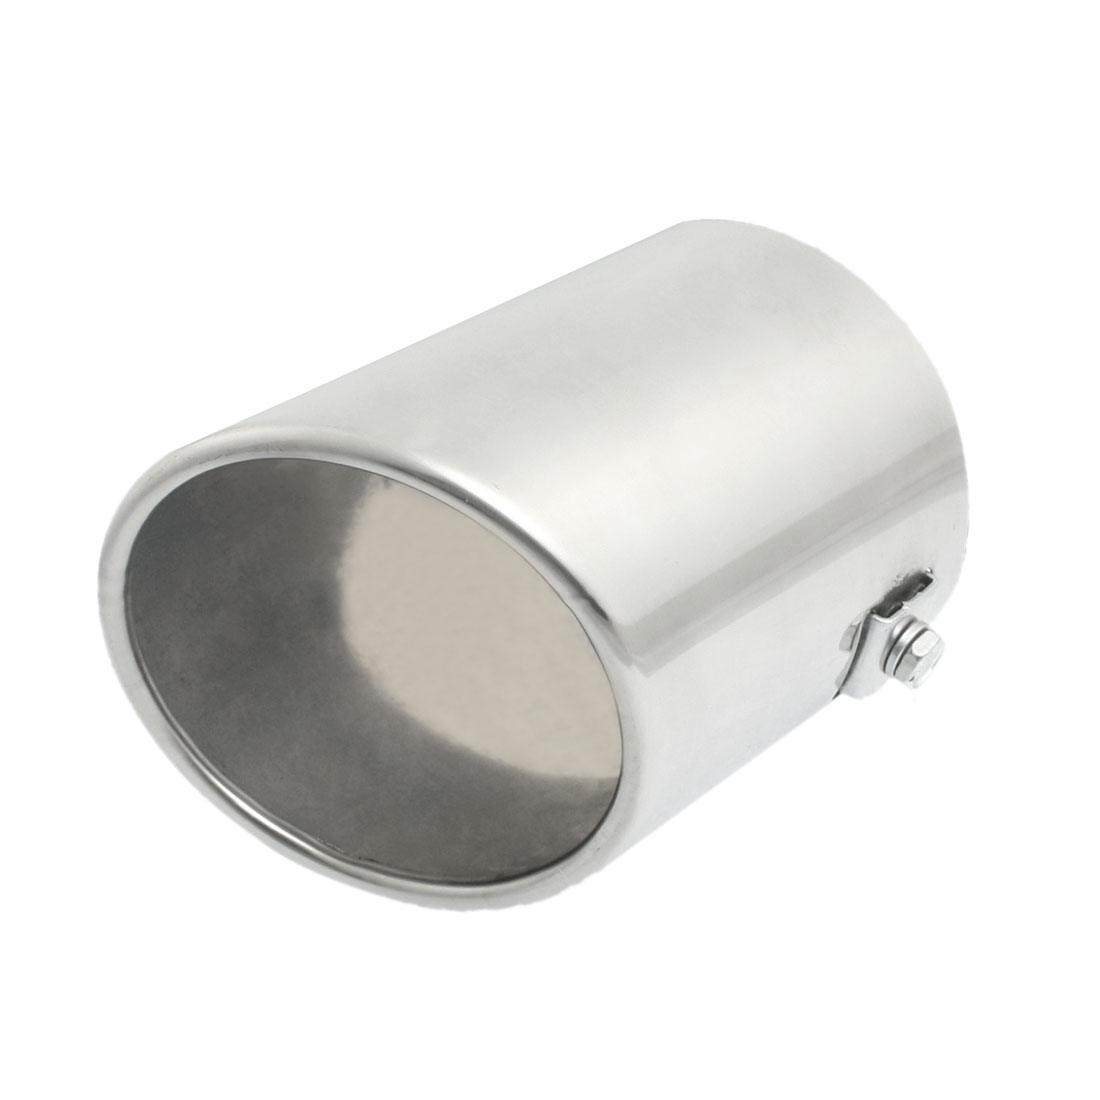 "2.7"" Inlet Silencer Tail Muffler Tip for Volkswagen Sagitar"